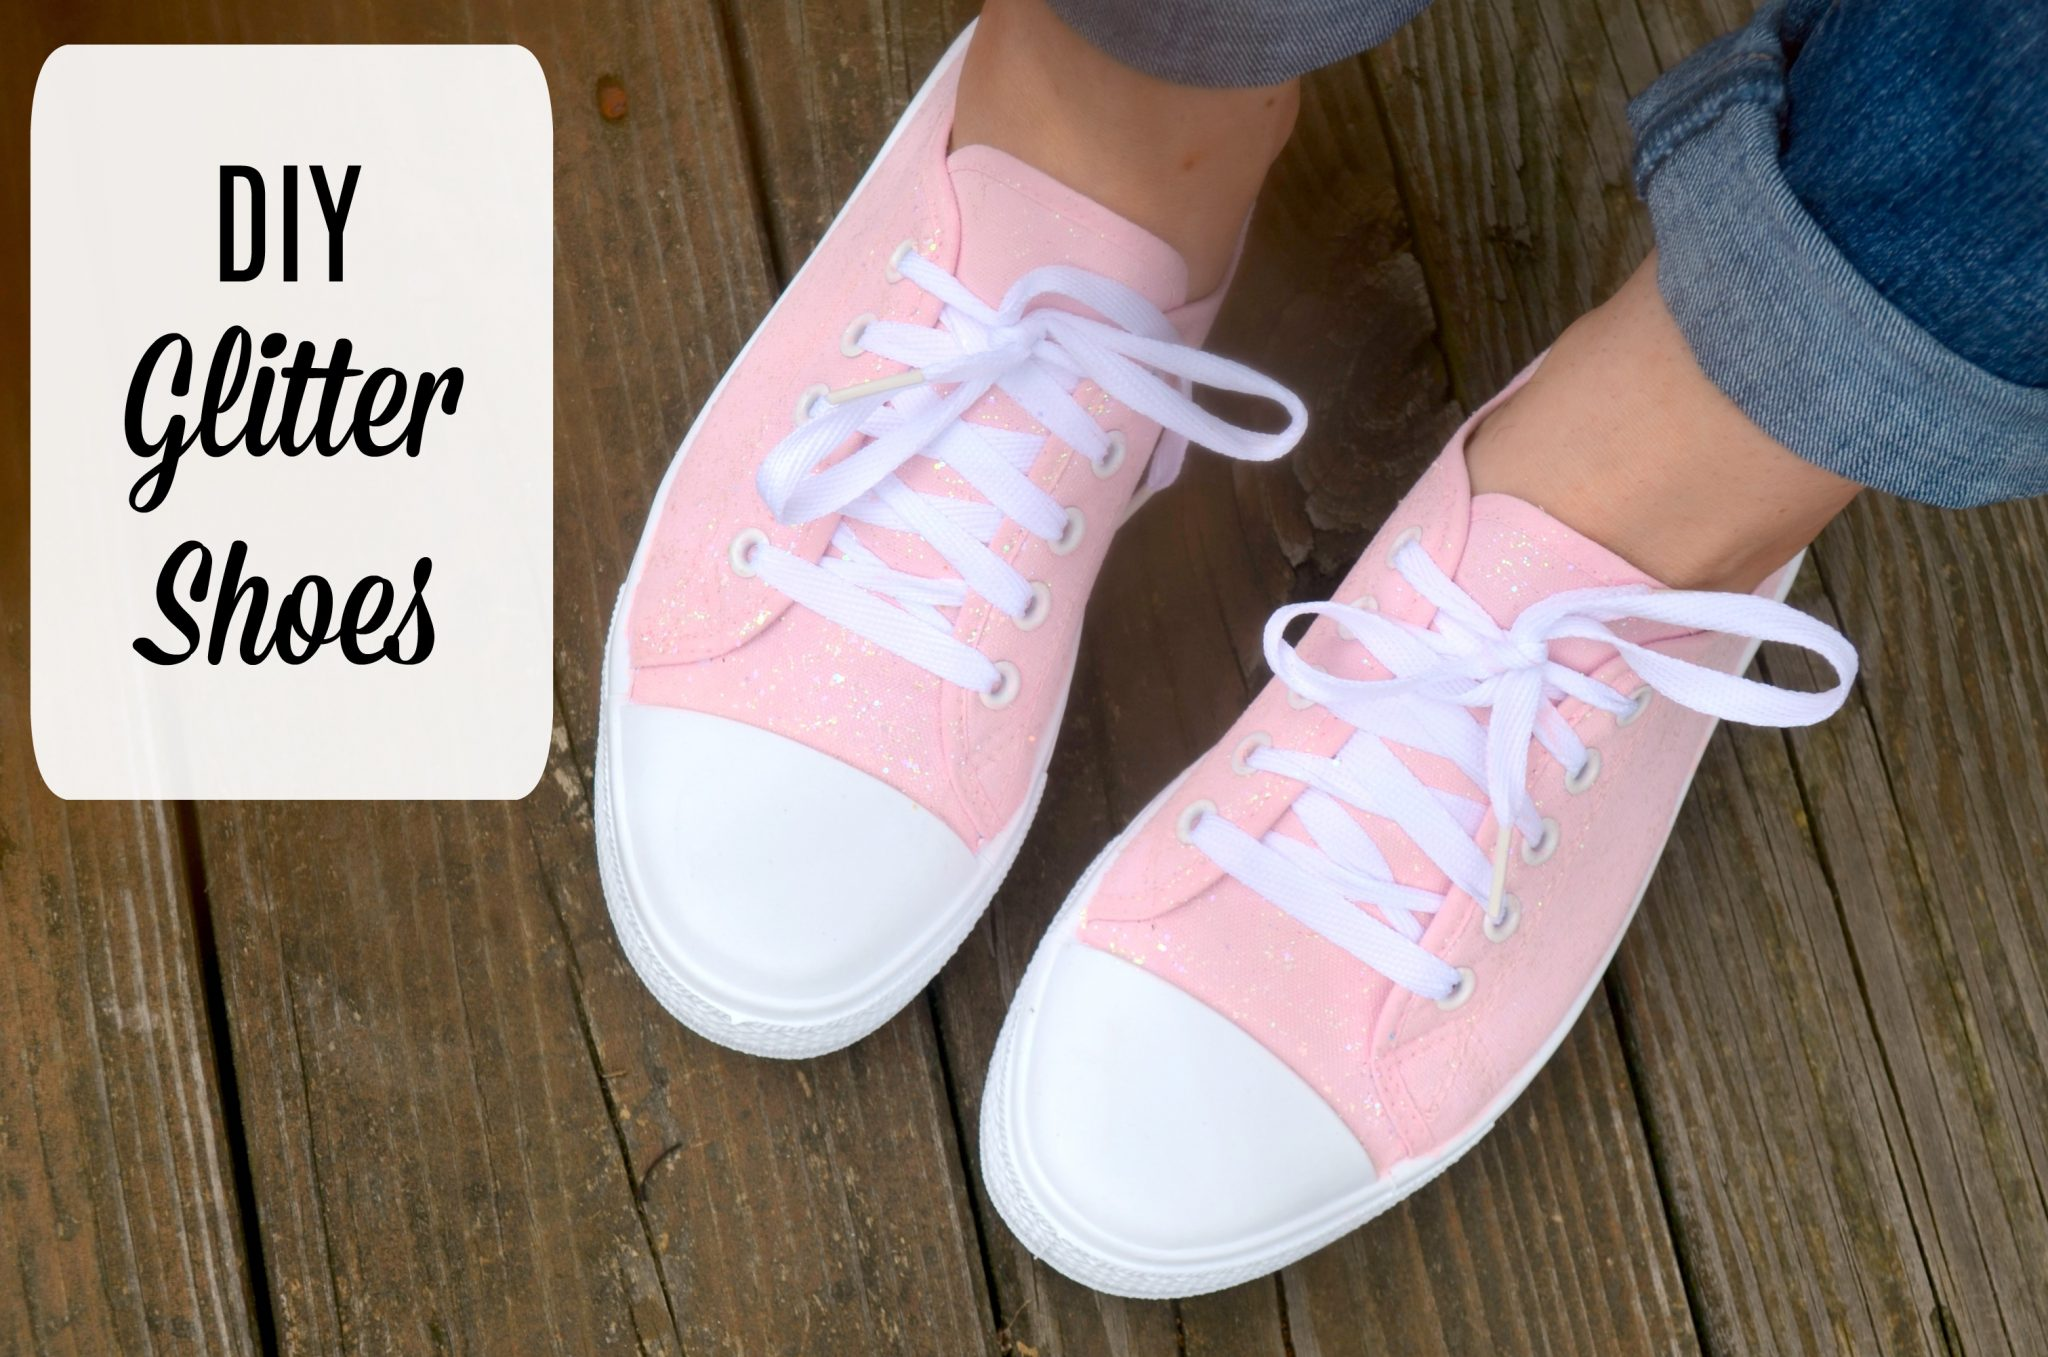 DIY Glitter Sneakers with Fabric